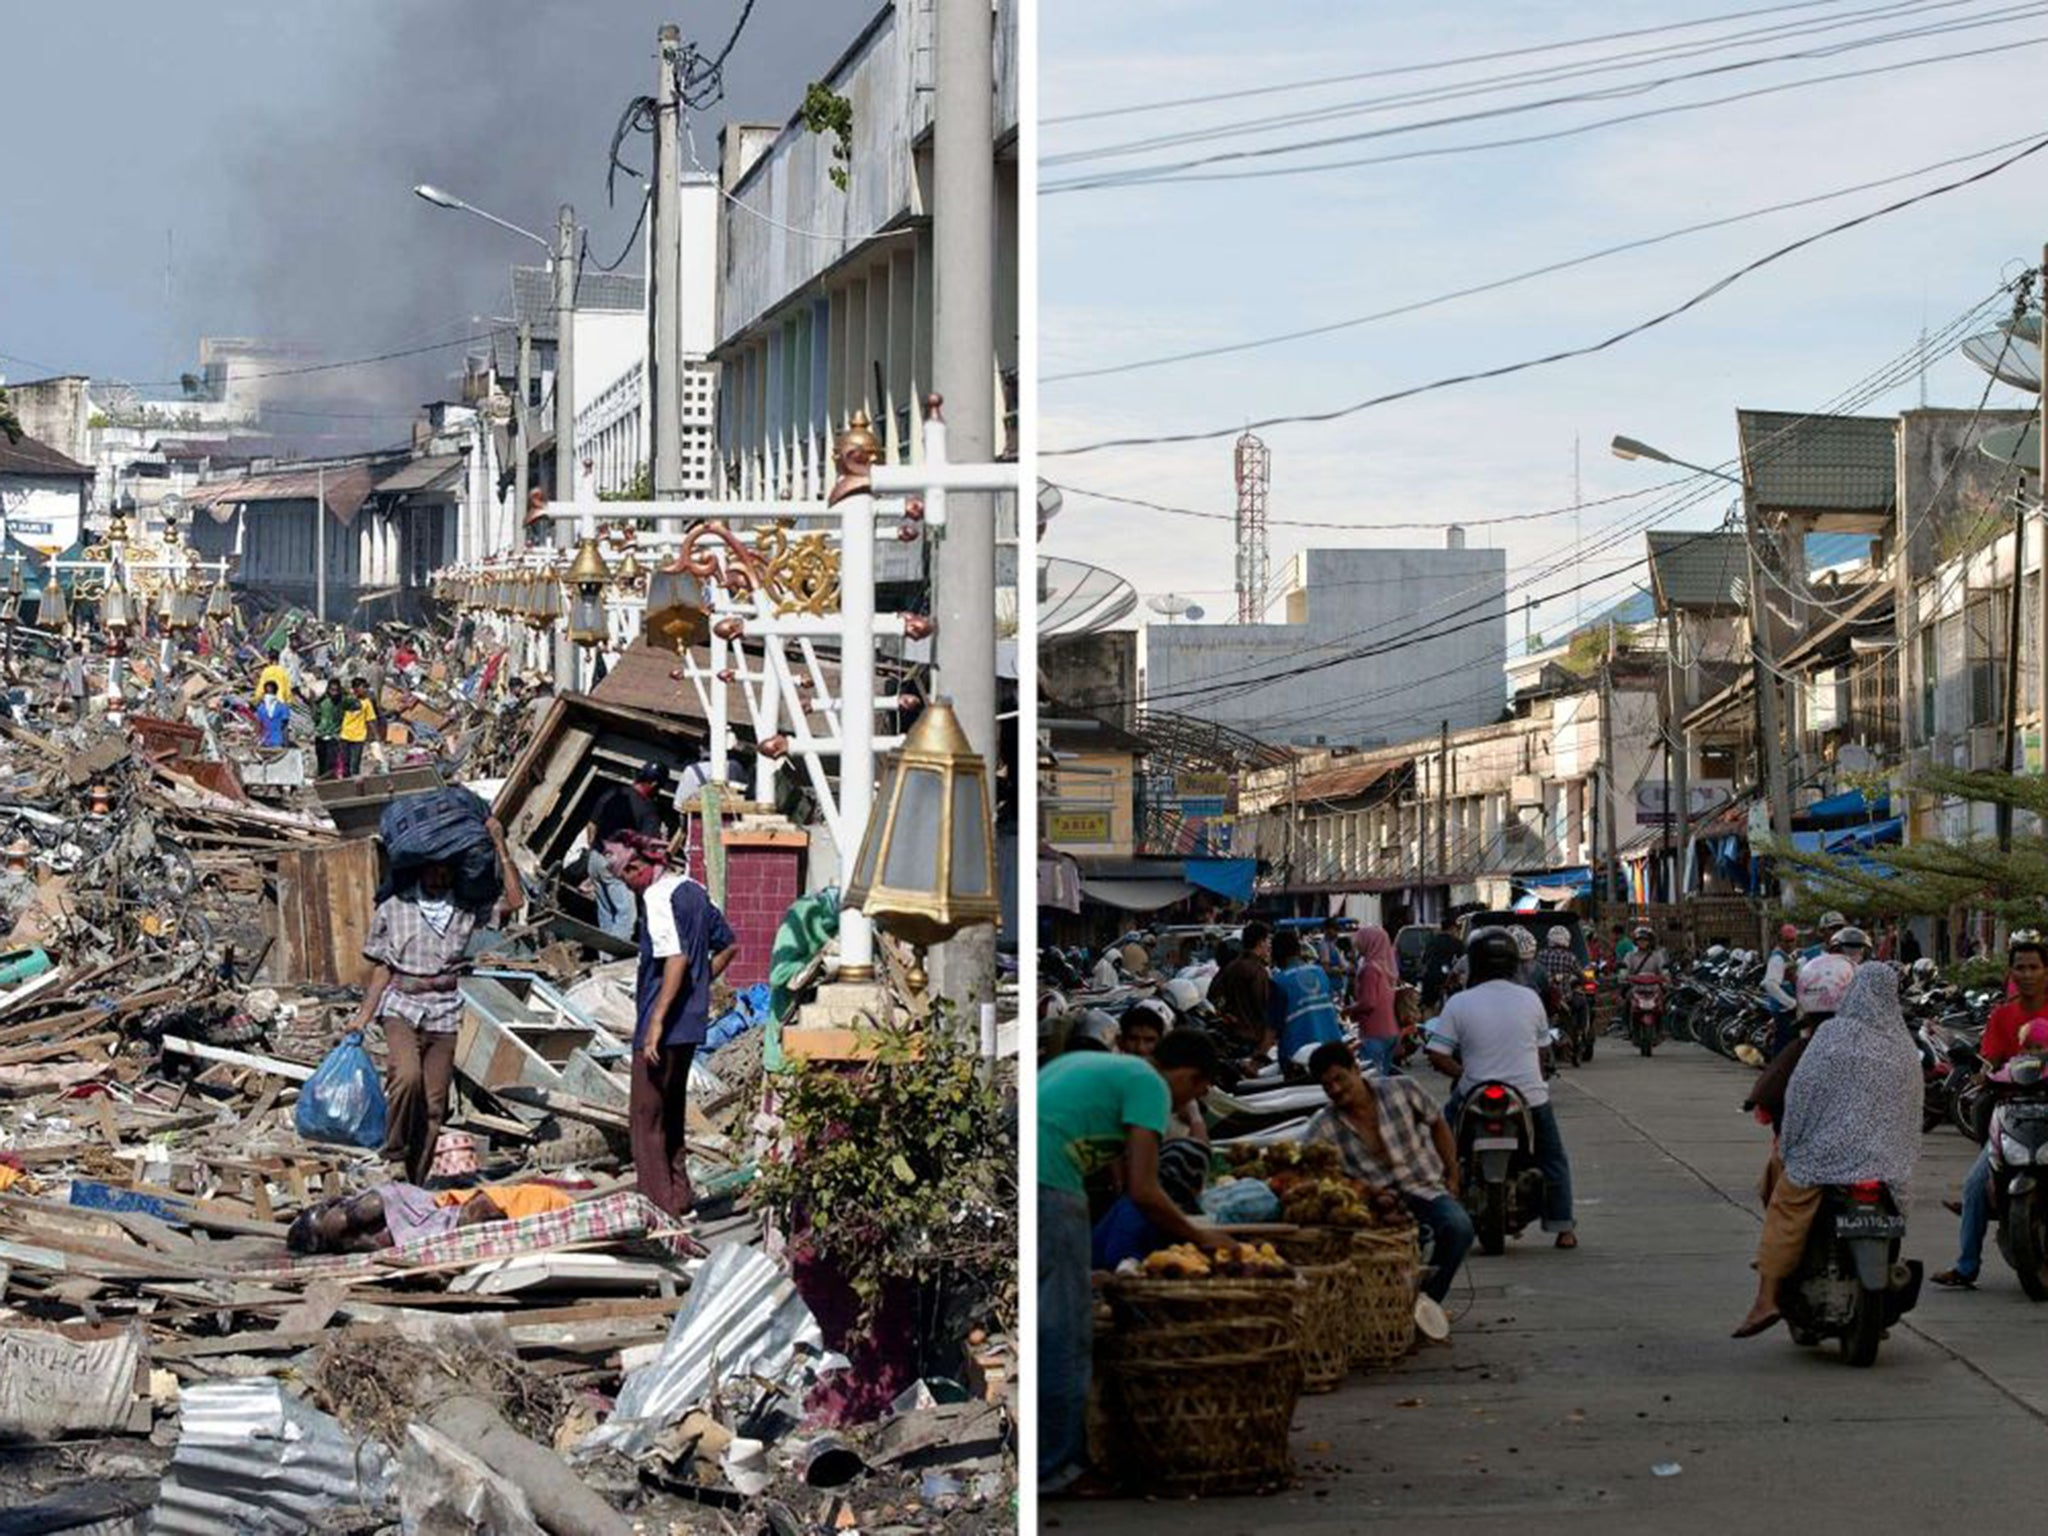 Banda Aceh Ten Years On A Decade After The Tsunami The Province